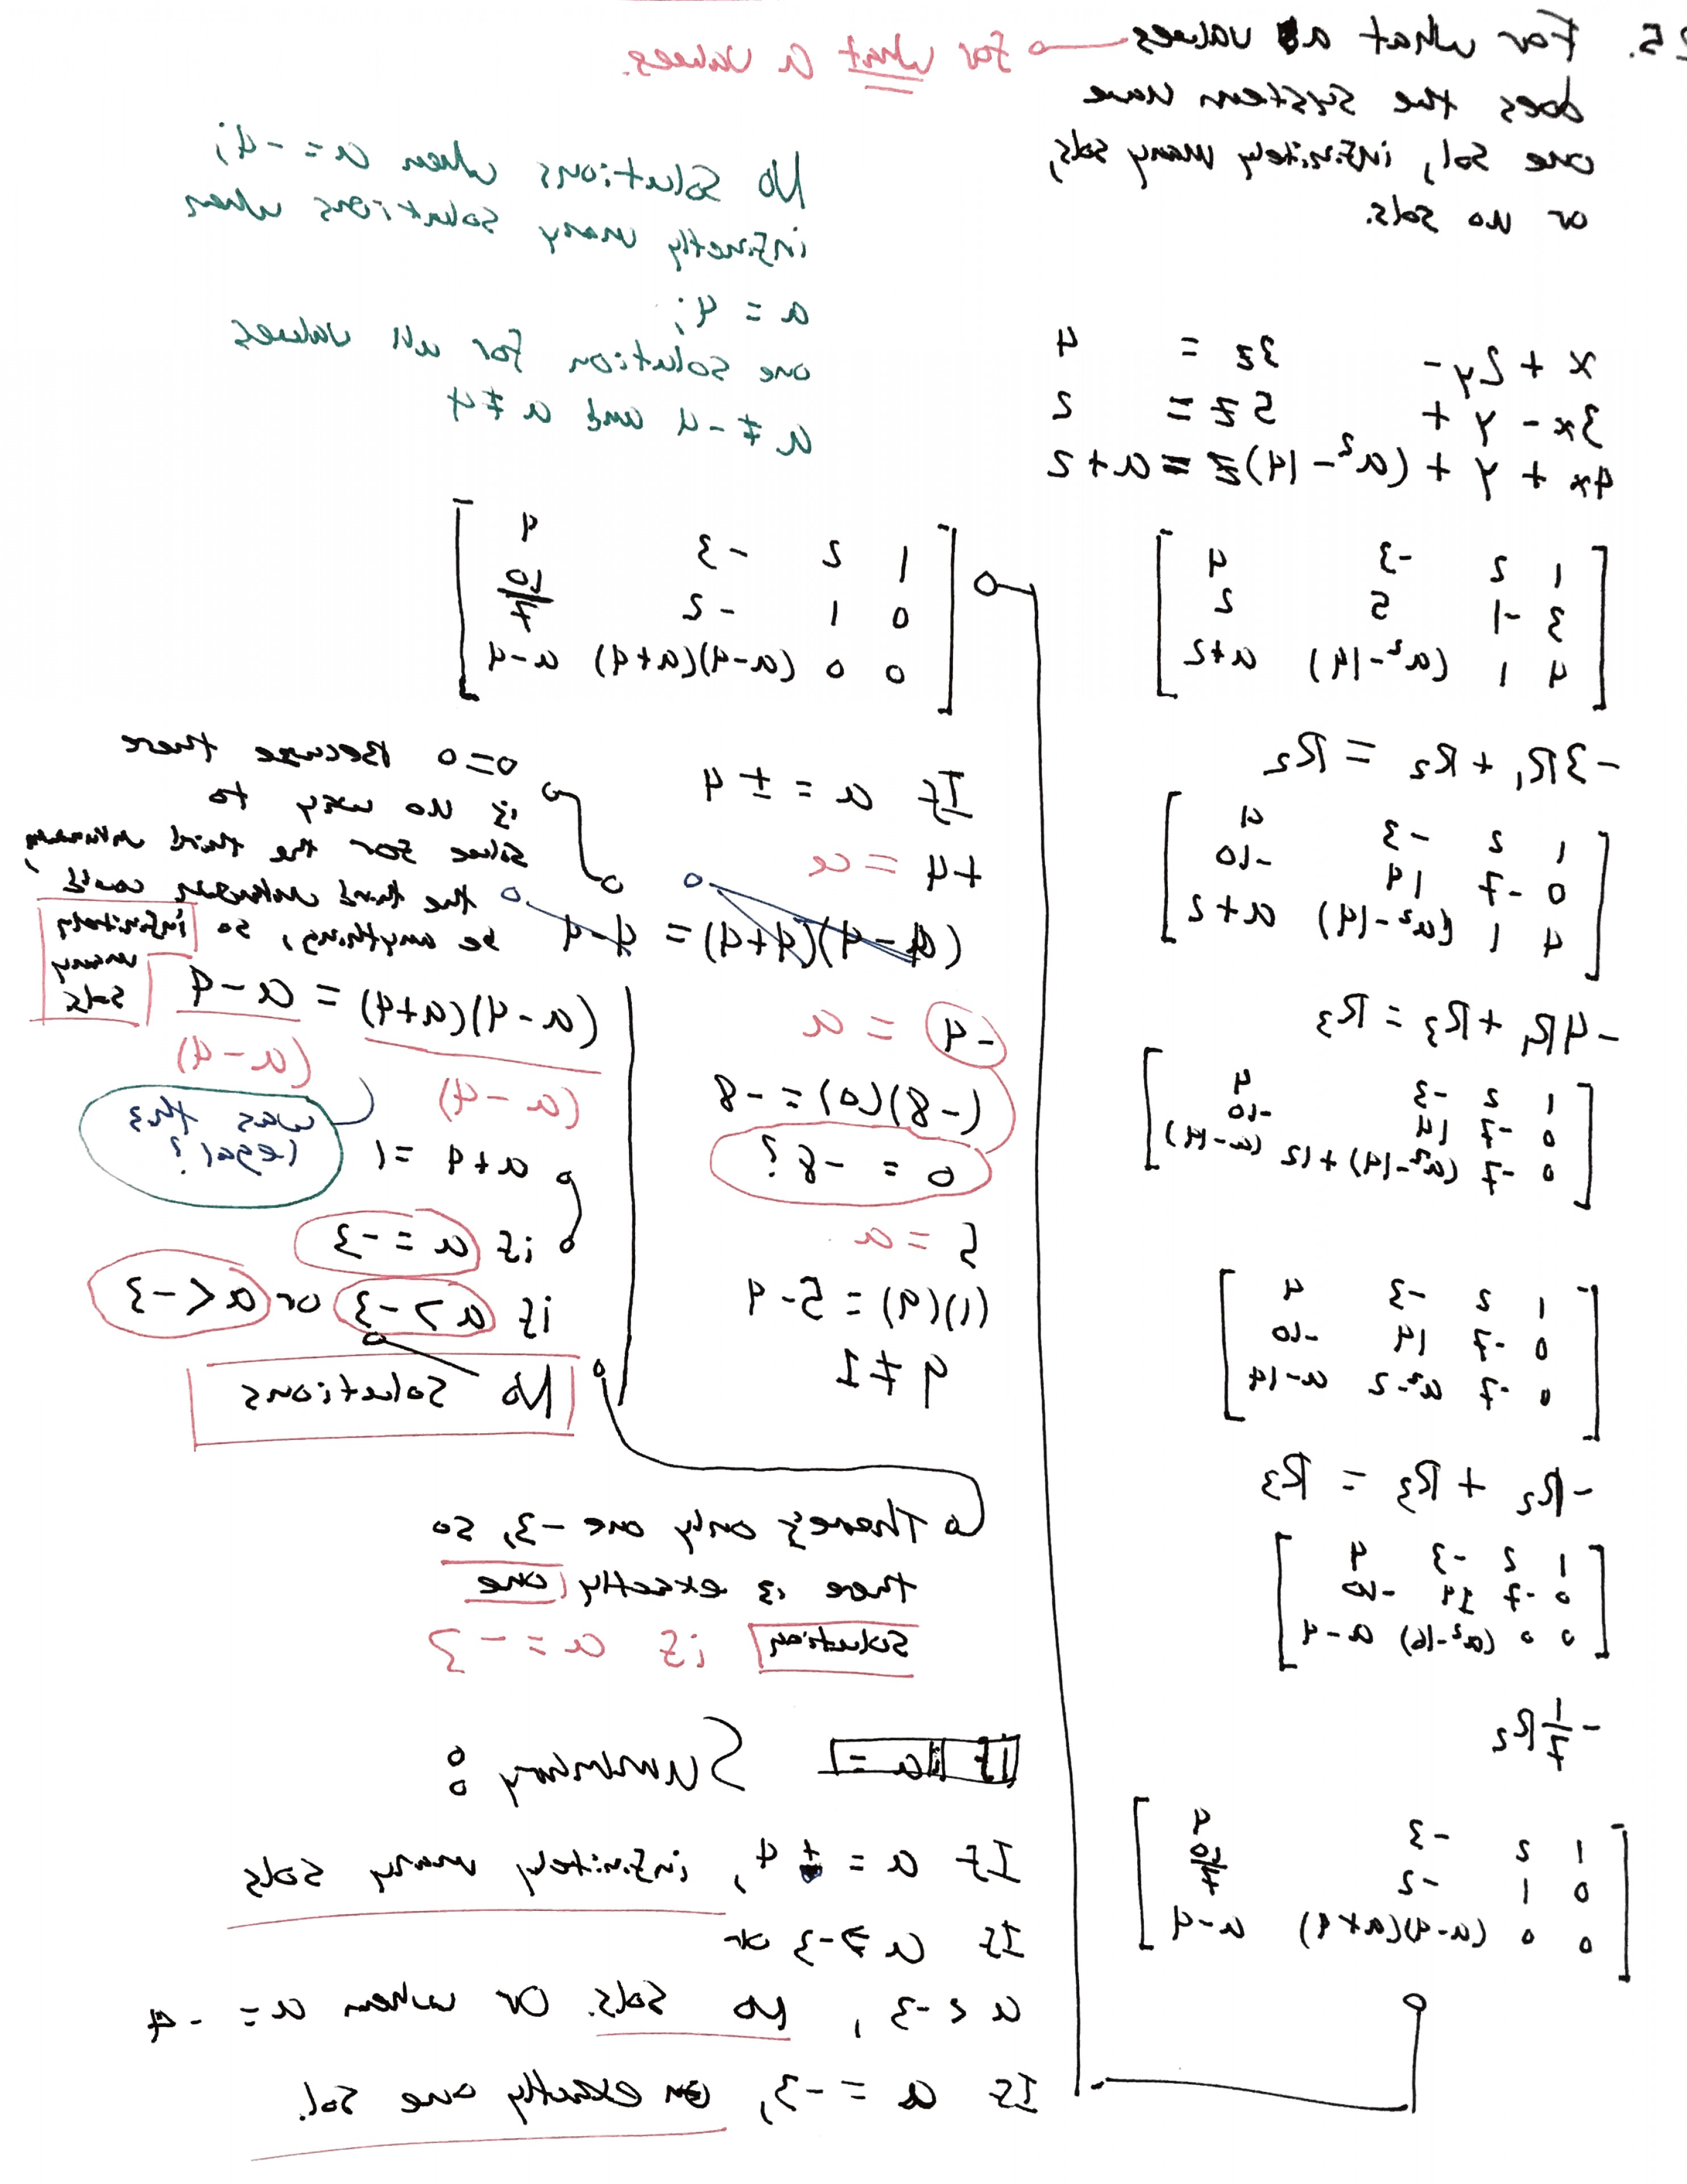 Linear Algebra Vector Zero: Linear Algebra Determine The Values Of A For Which The System Has No Solutions